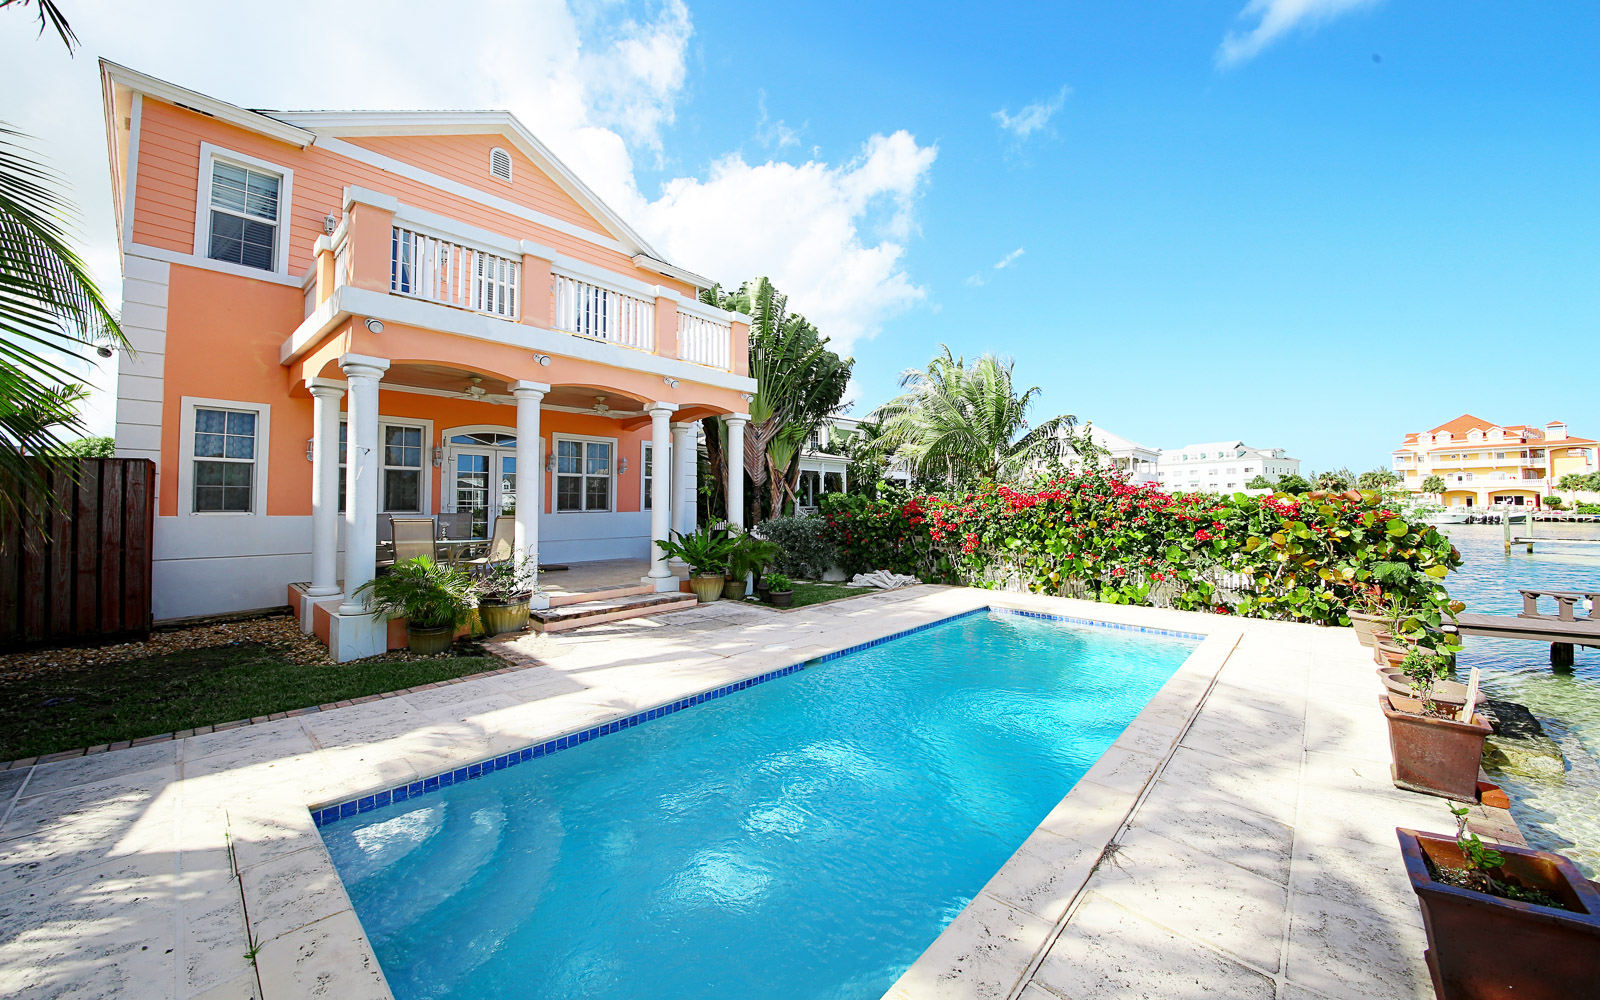 Co-op / Condo for Rent at Elegant Retreat in Sandyport - MLS 32040 Sandyport, Cable Beach, Nassau And Paradise Island Bahamas